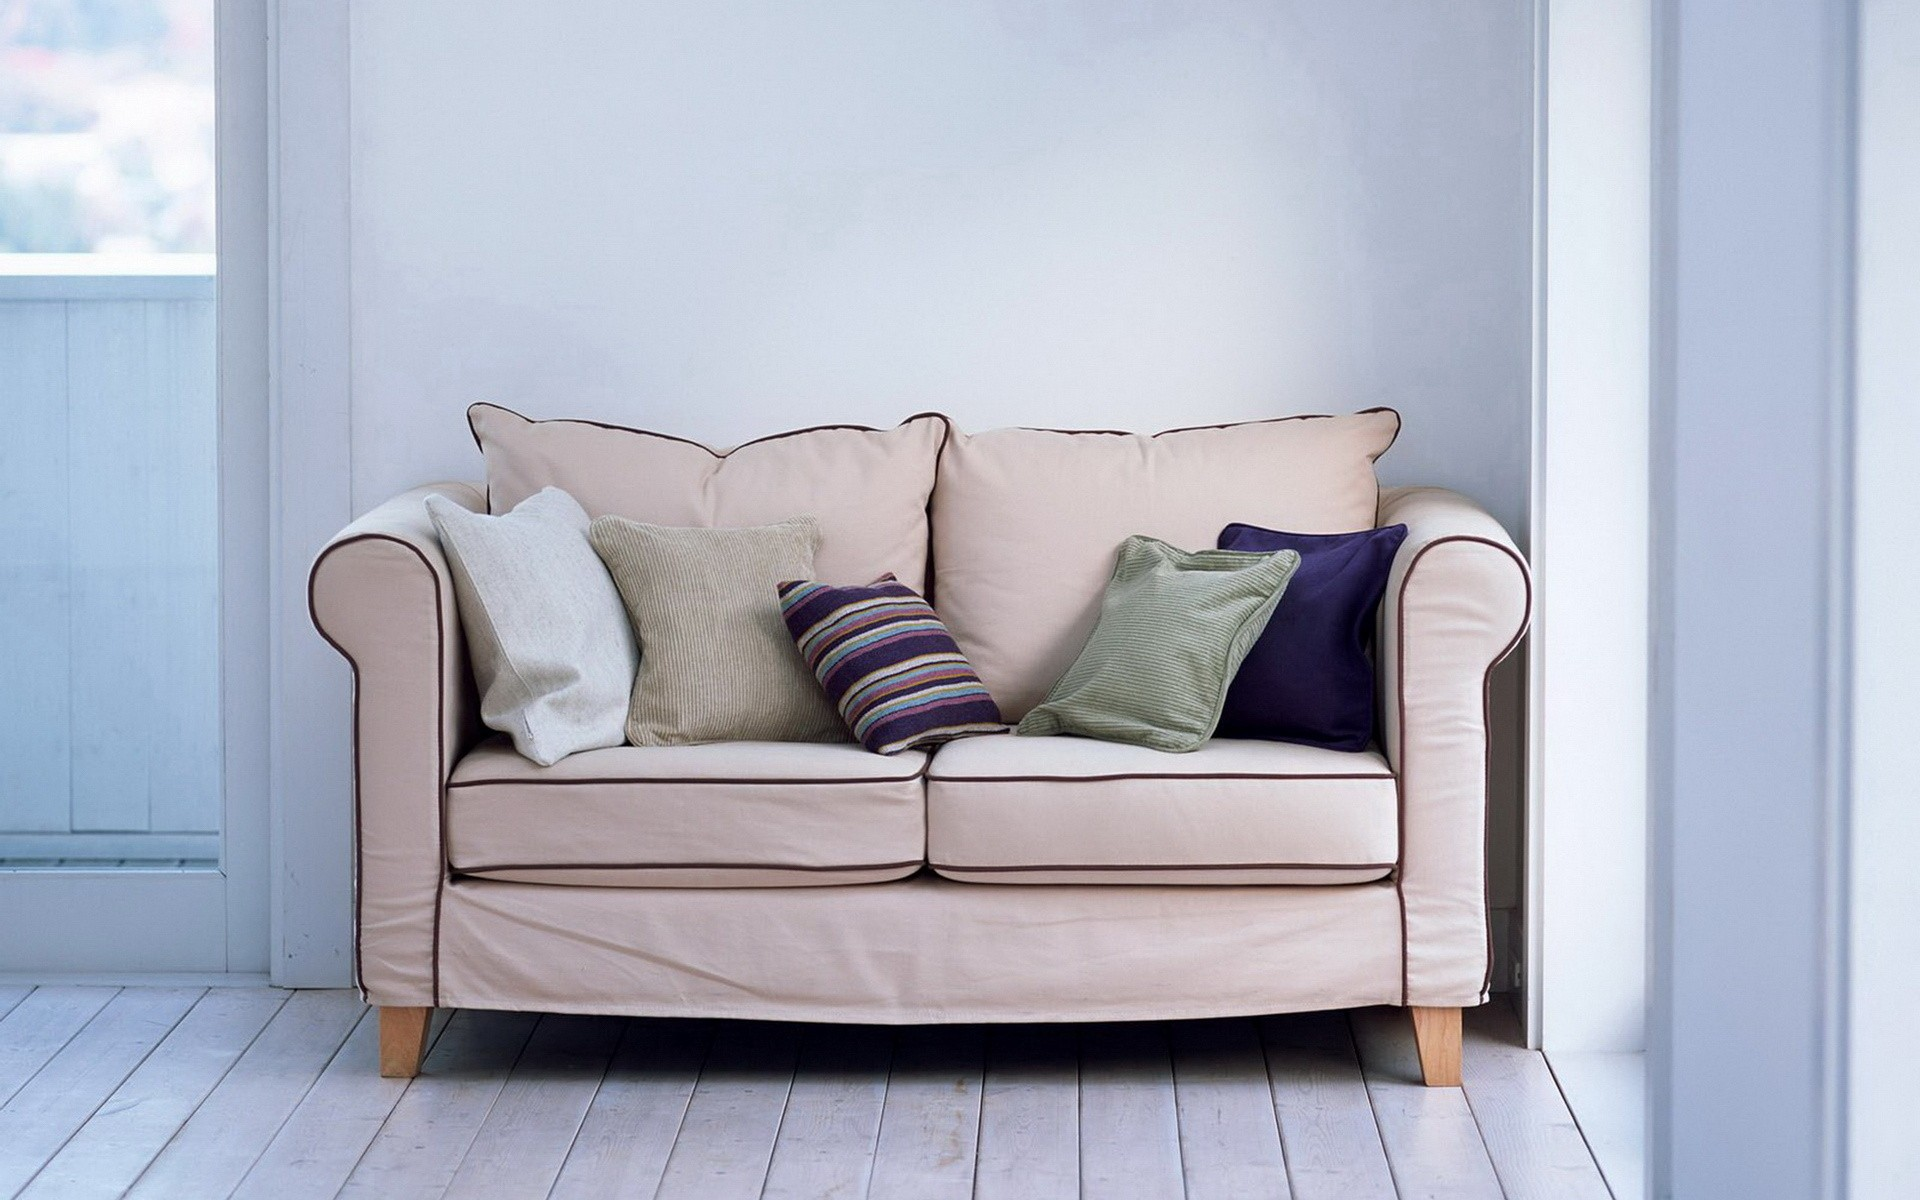 18 Excellent Hd Couch Wallpapers